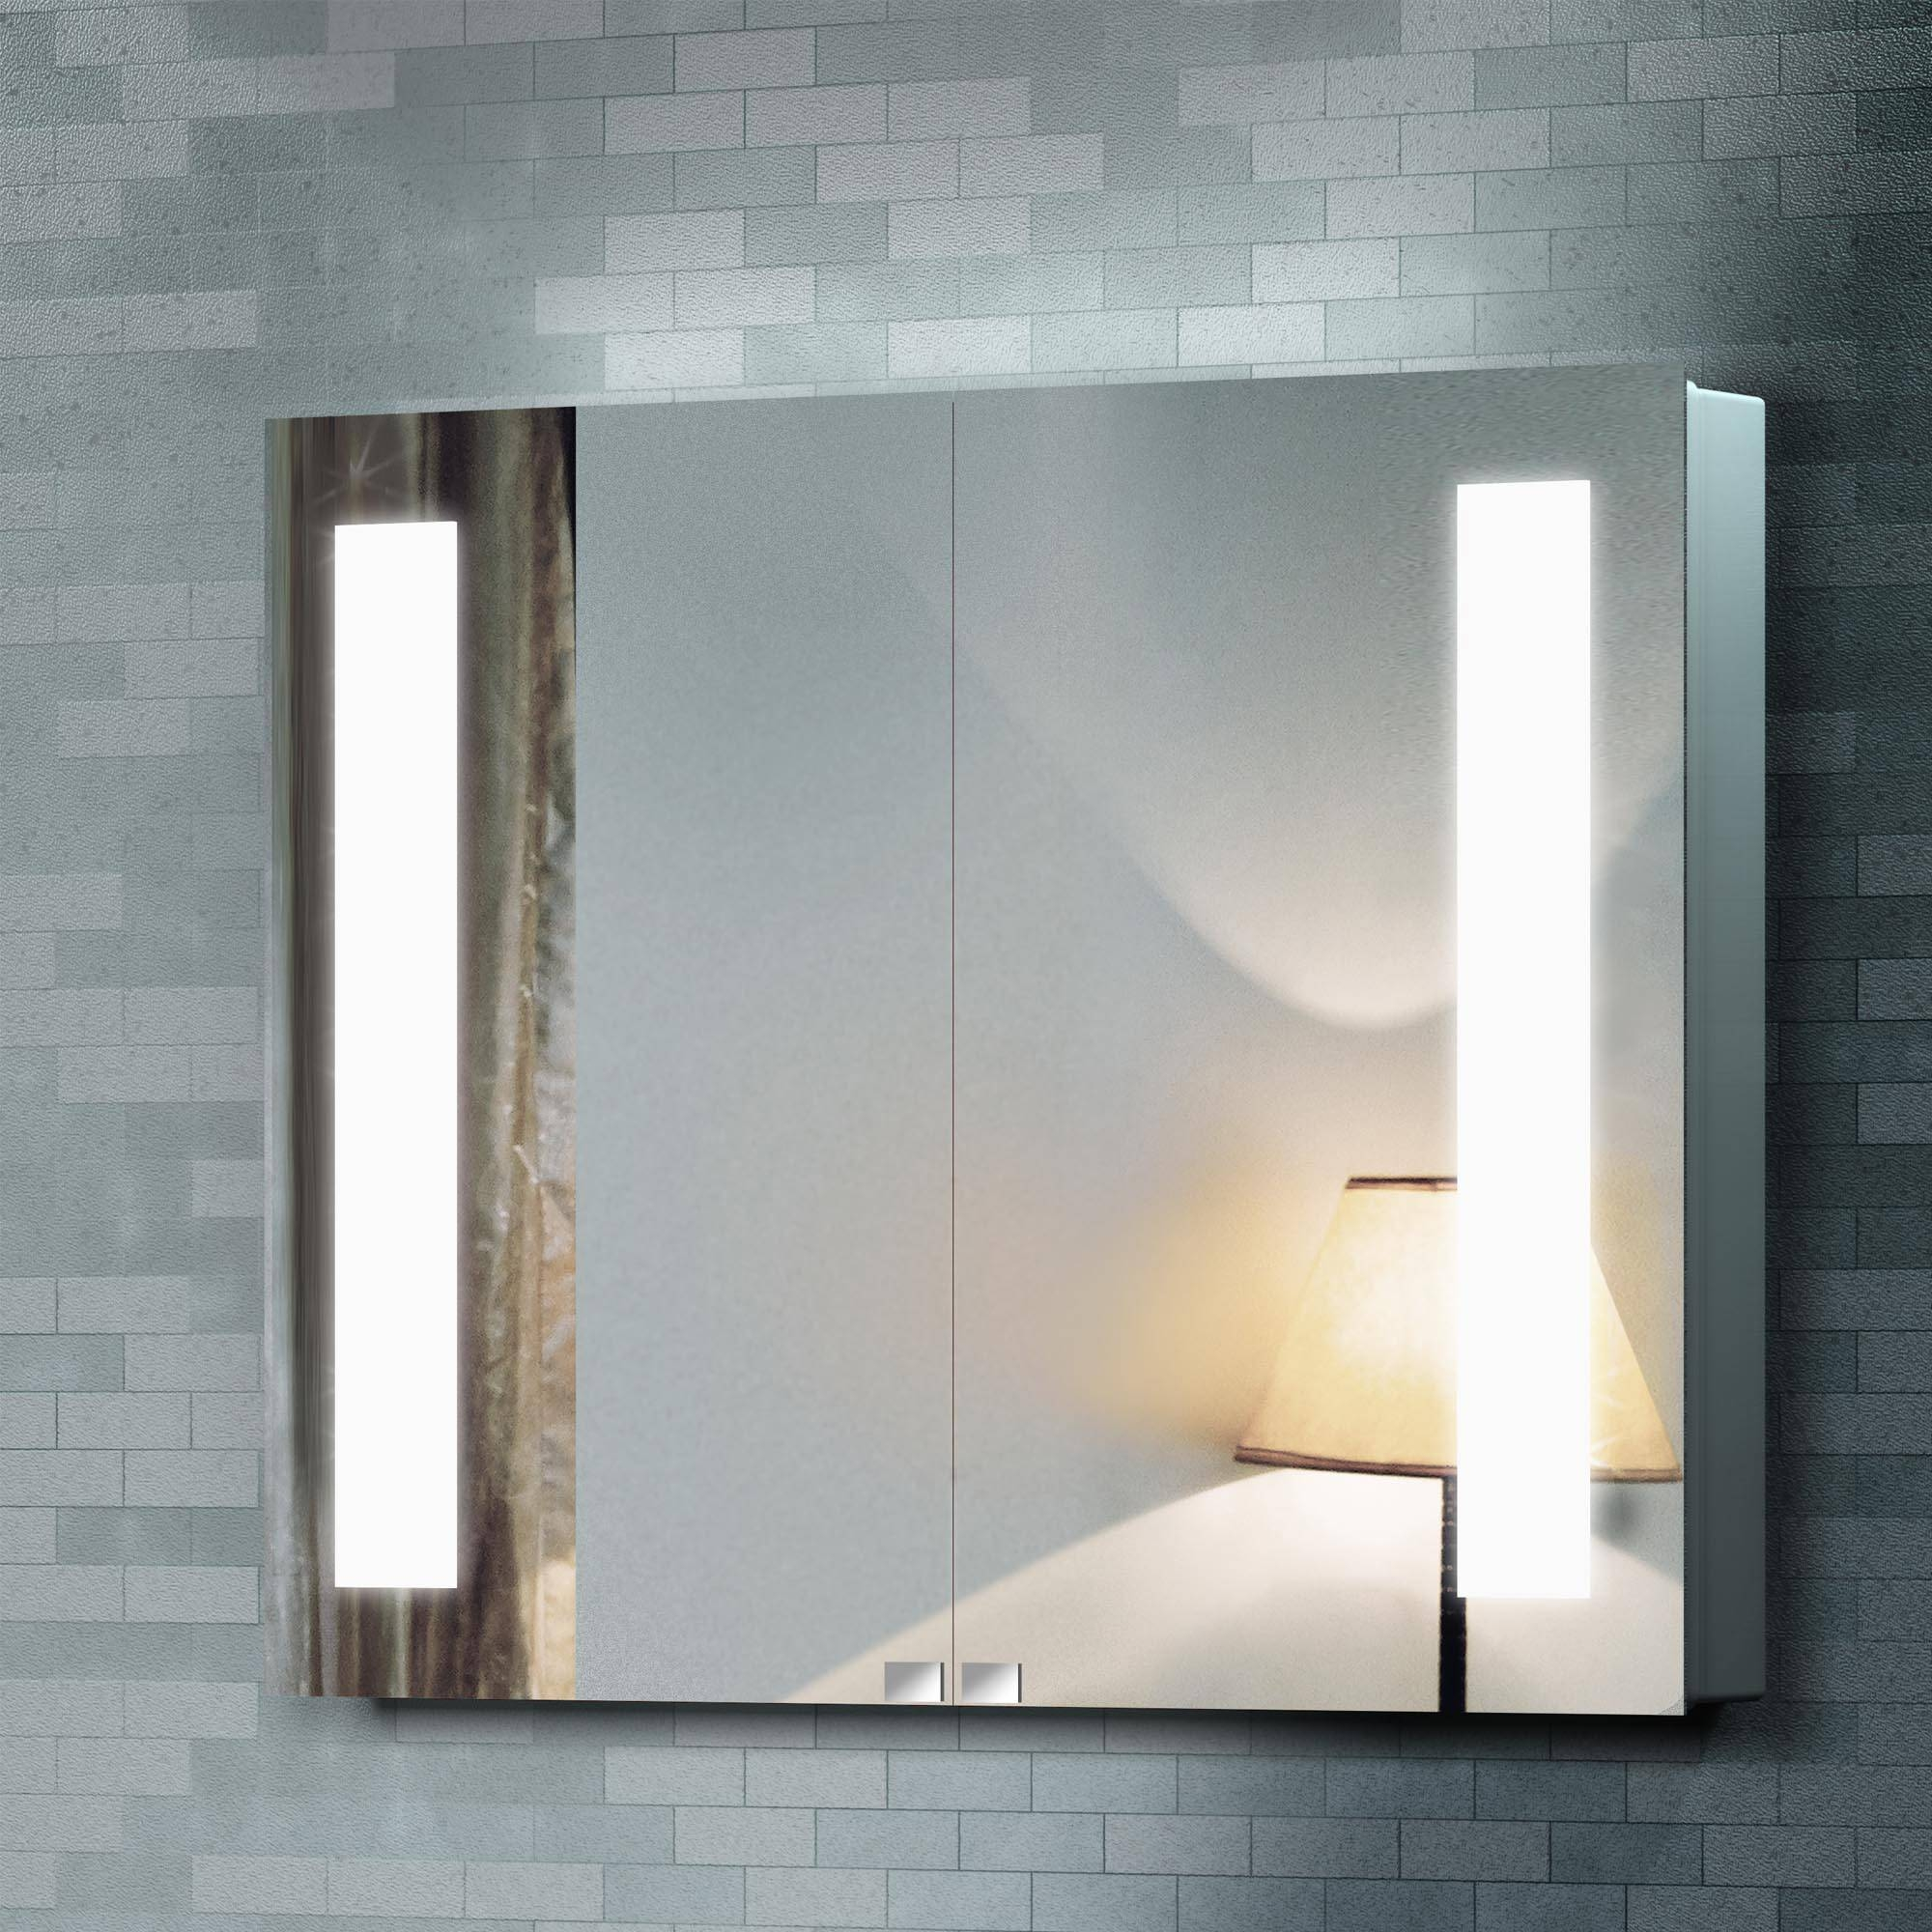 Bathroom Cabinets : Mirrored Vanity Bathroom Illuminated Mirrors with Large Illuminated Mirrors (Image 10 of 15)